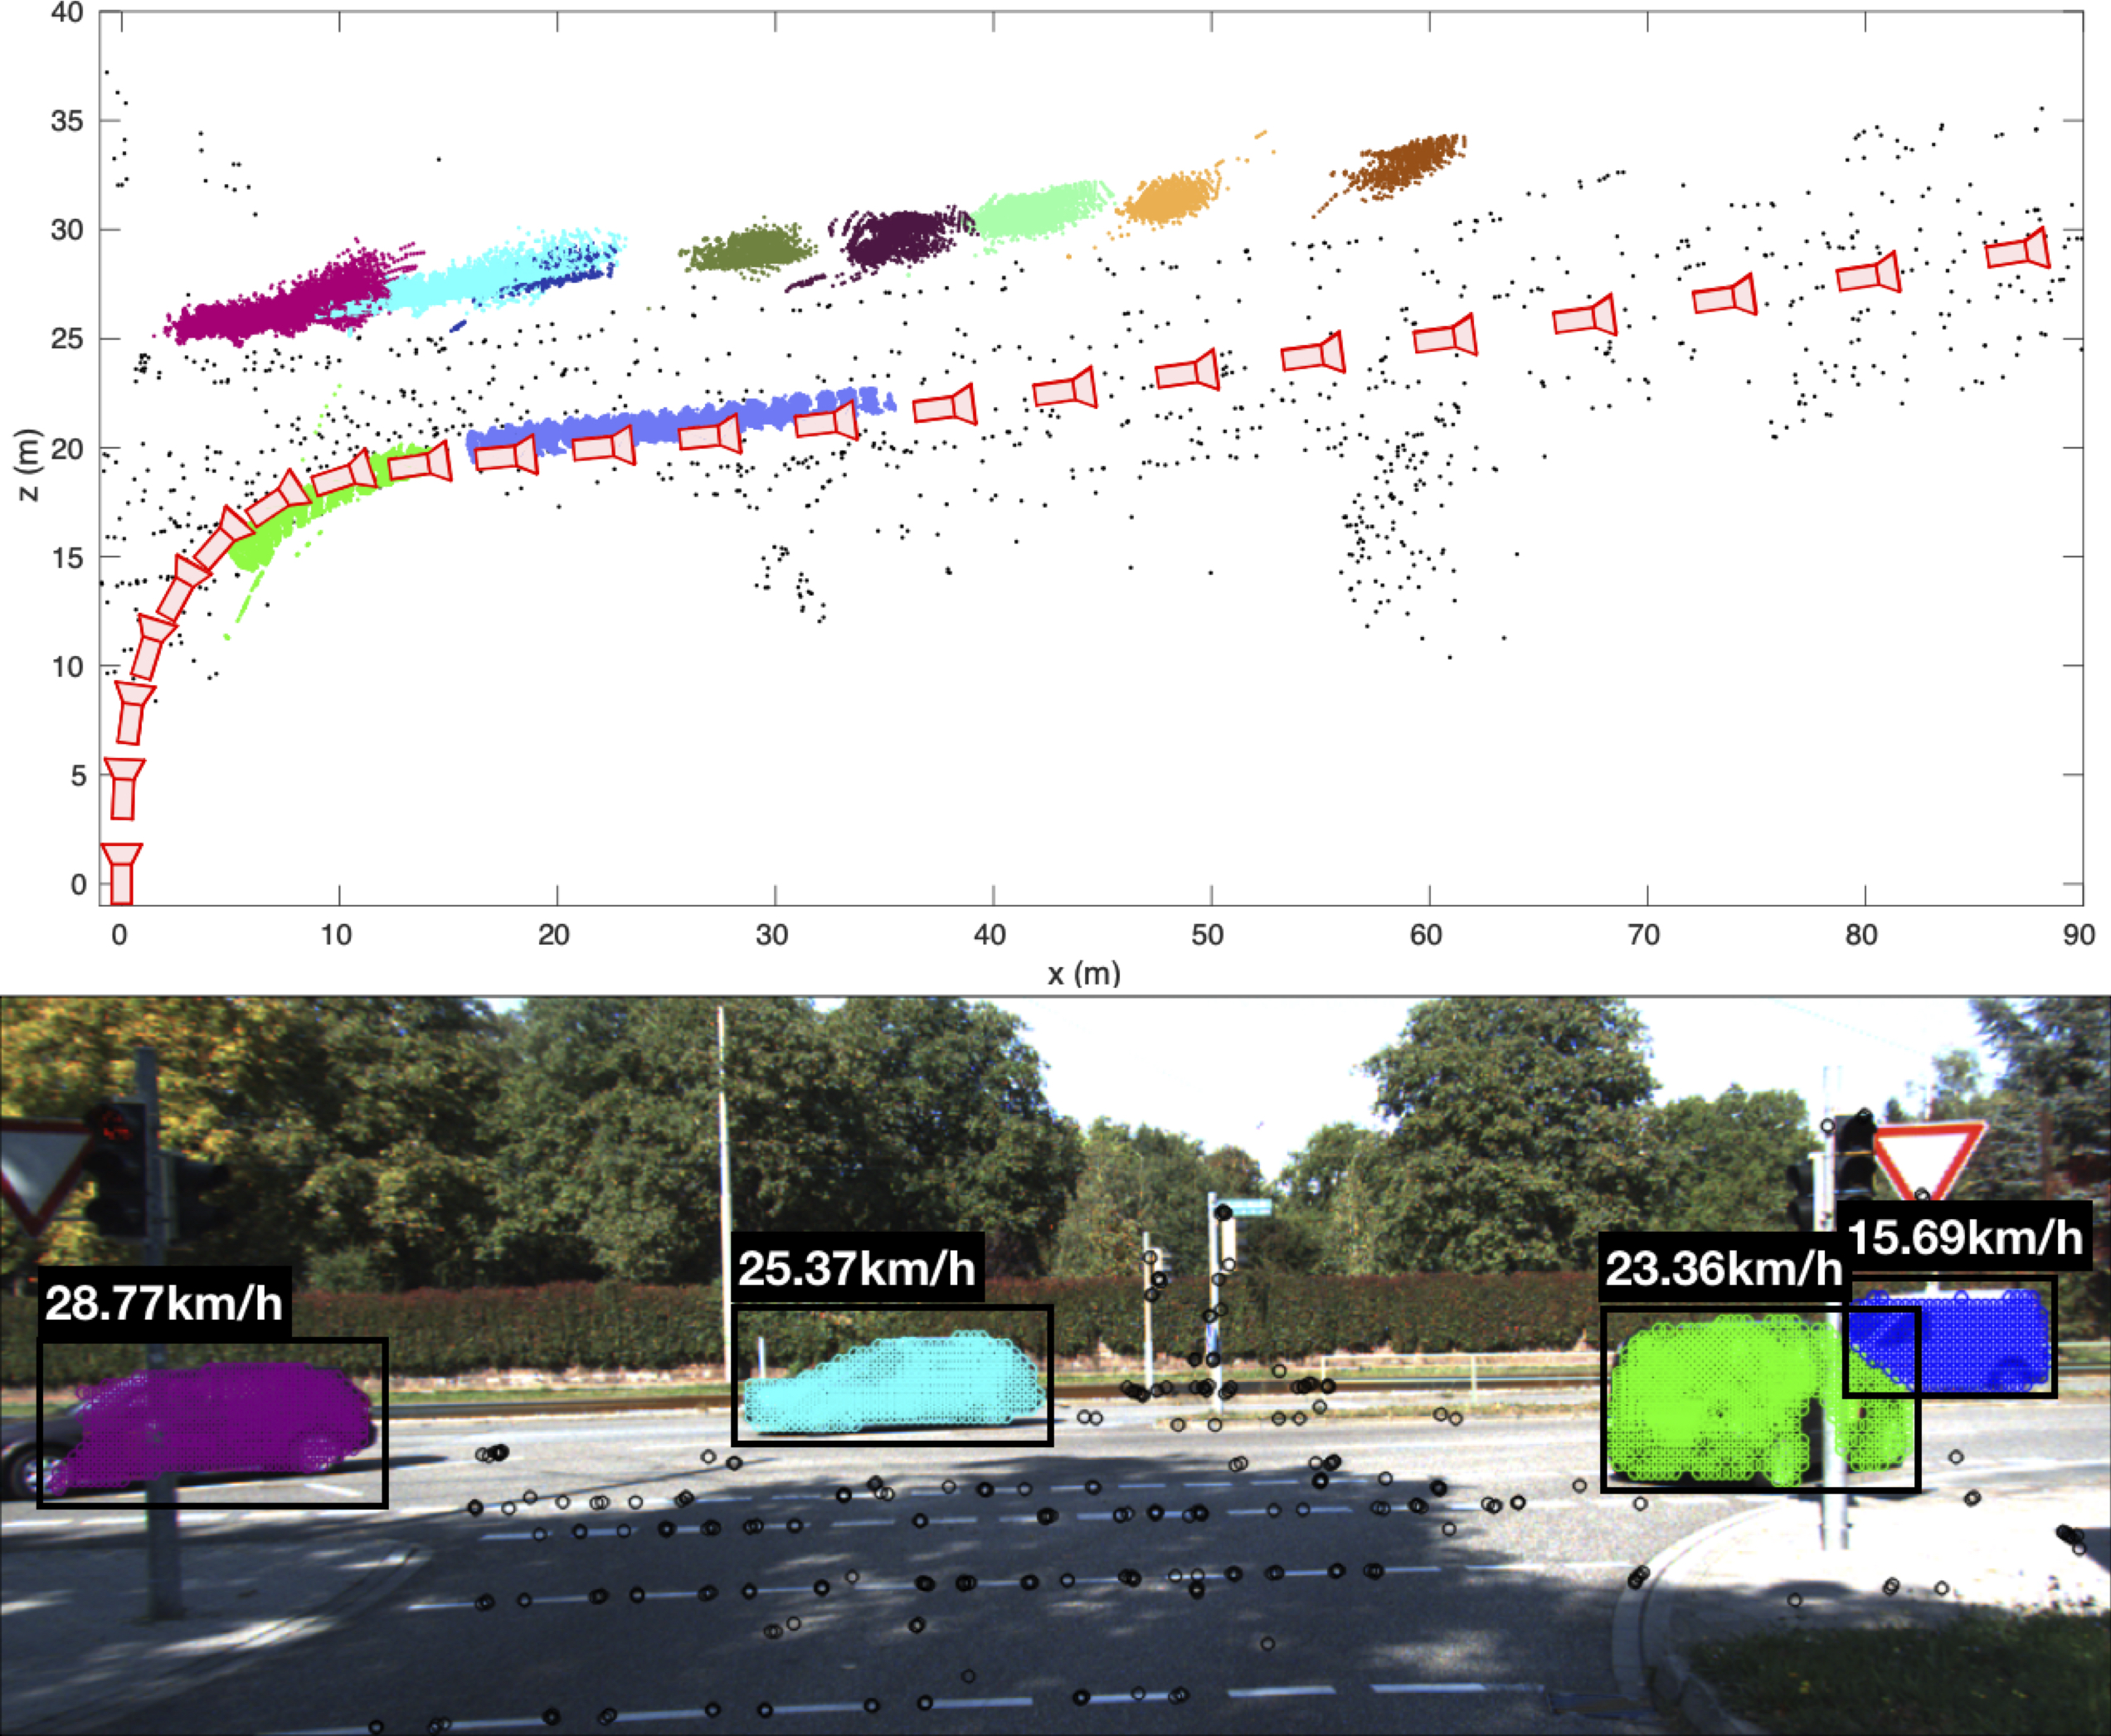 Robust Ego and Object 6-DoF Motion Estimation and Tracking